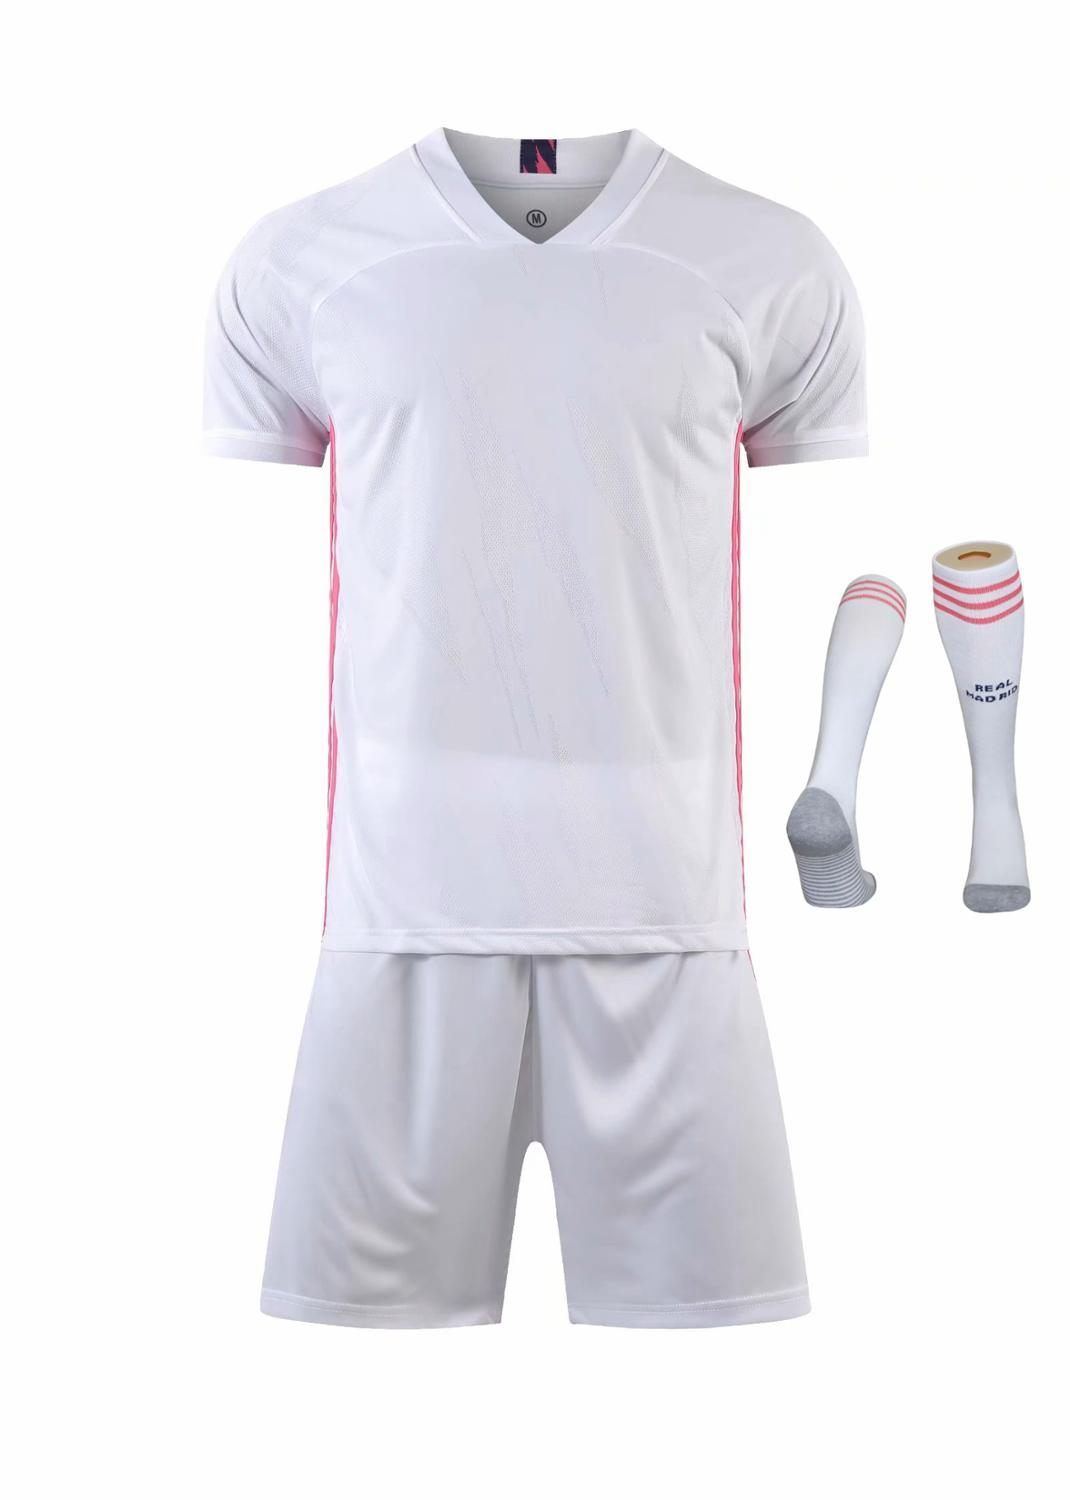 Children Sets football uniforms boys and girls sports kids youth training suits blank custom print soccer set with socks 8